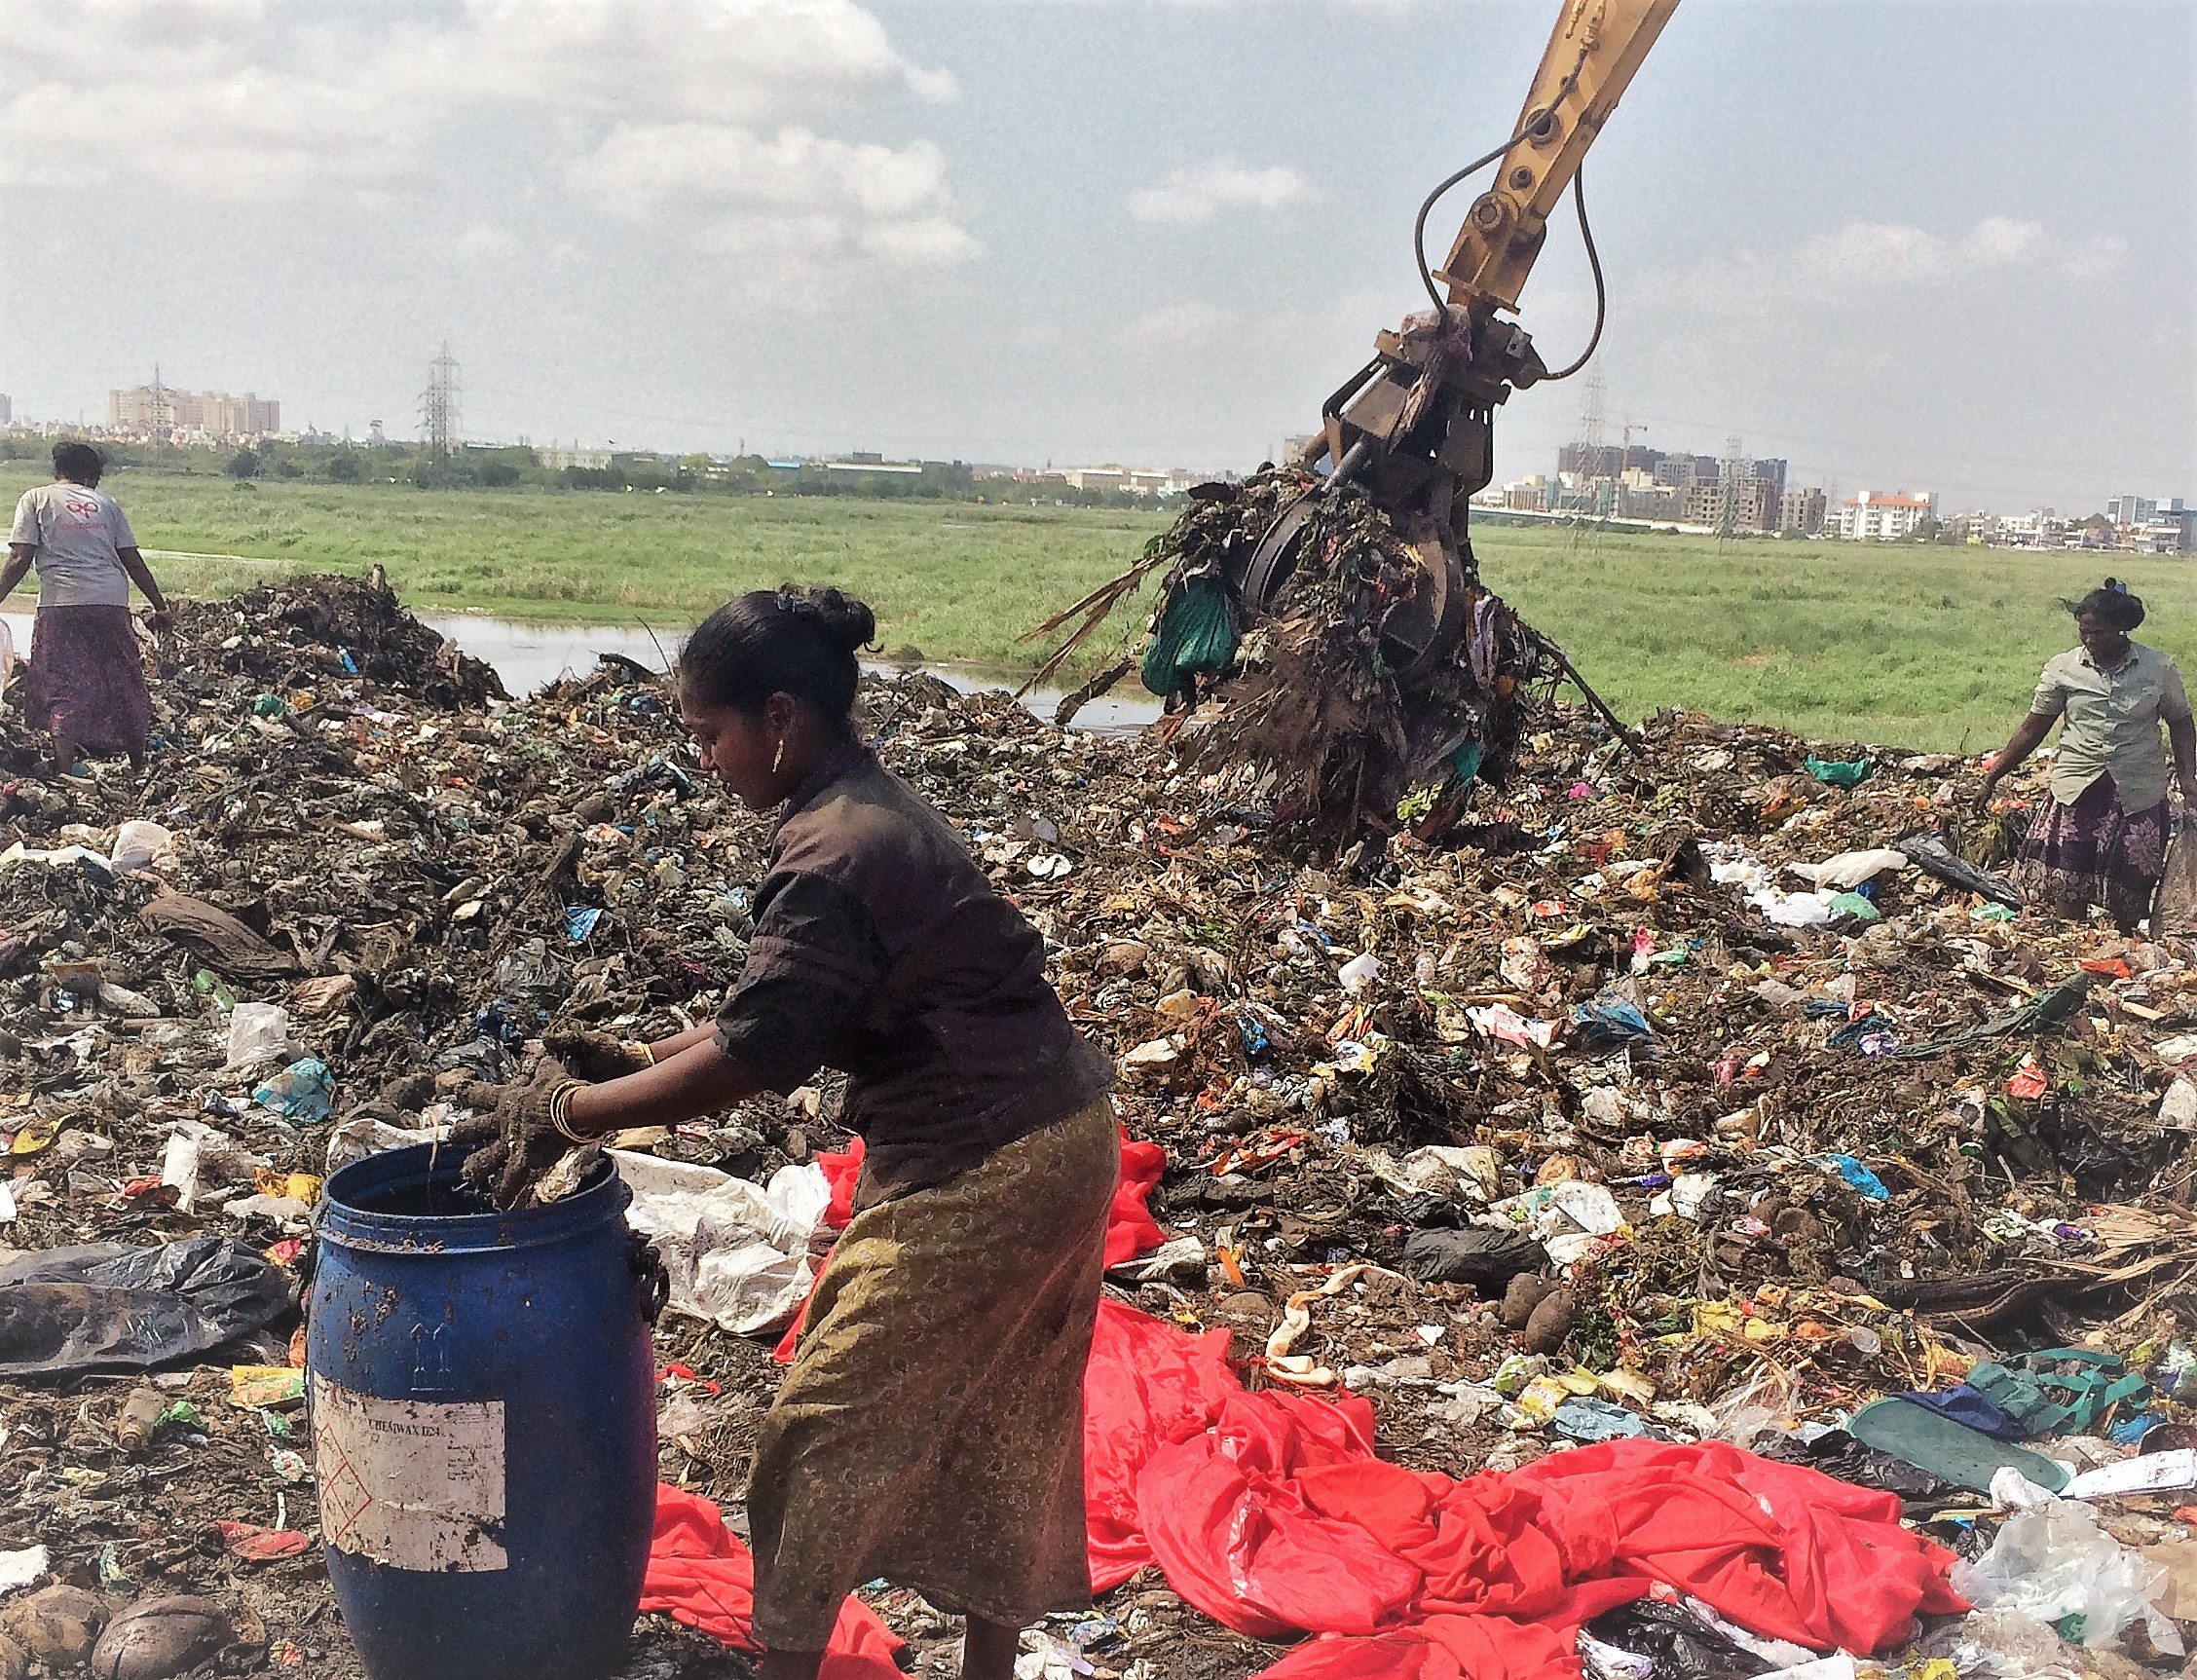 An open garbage dump in Chennai, India